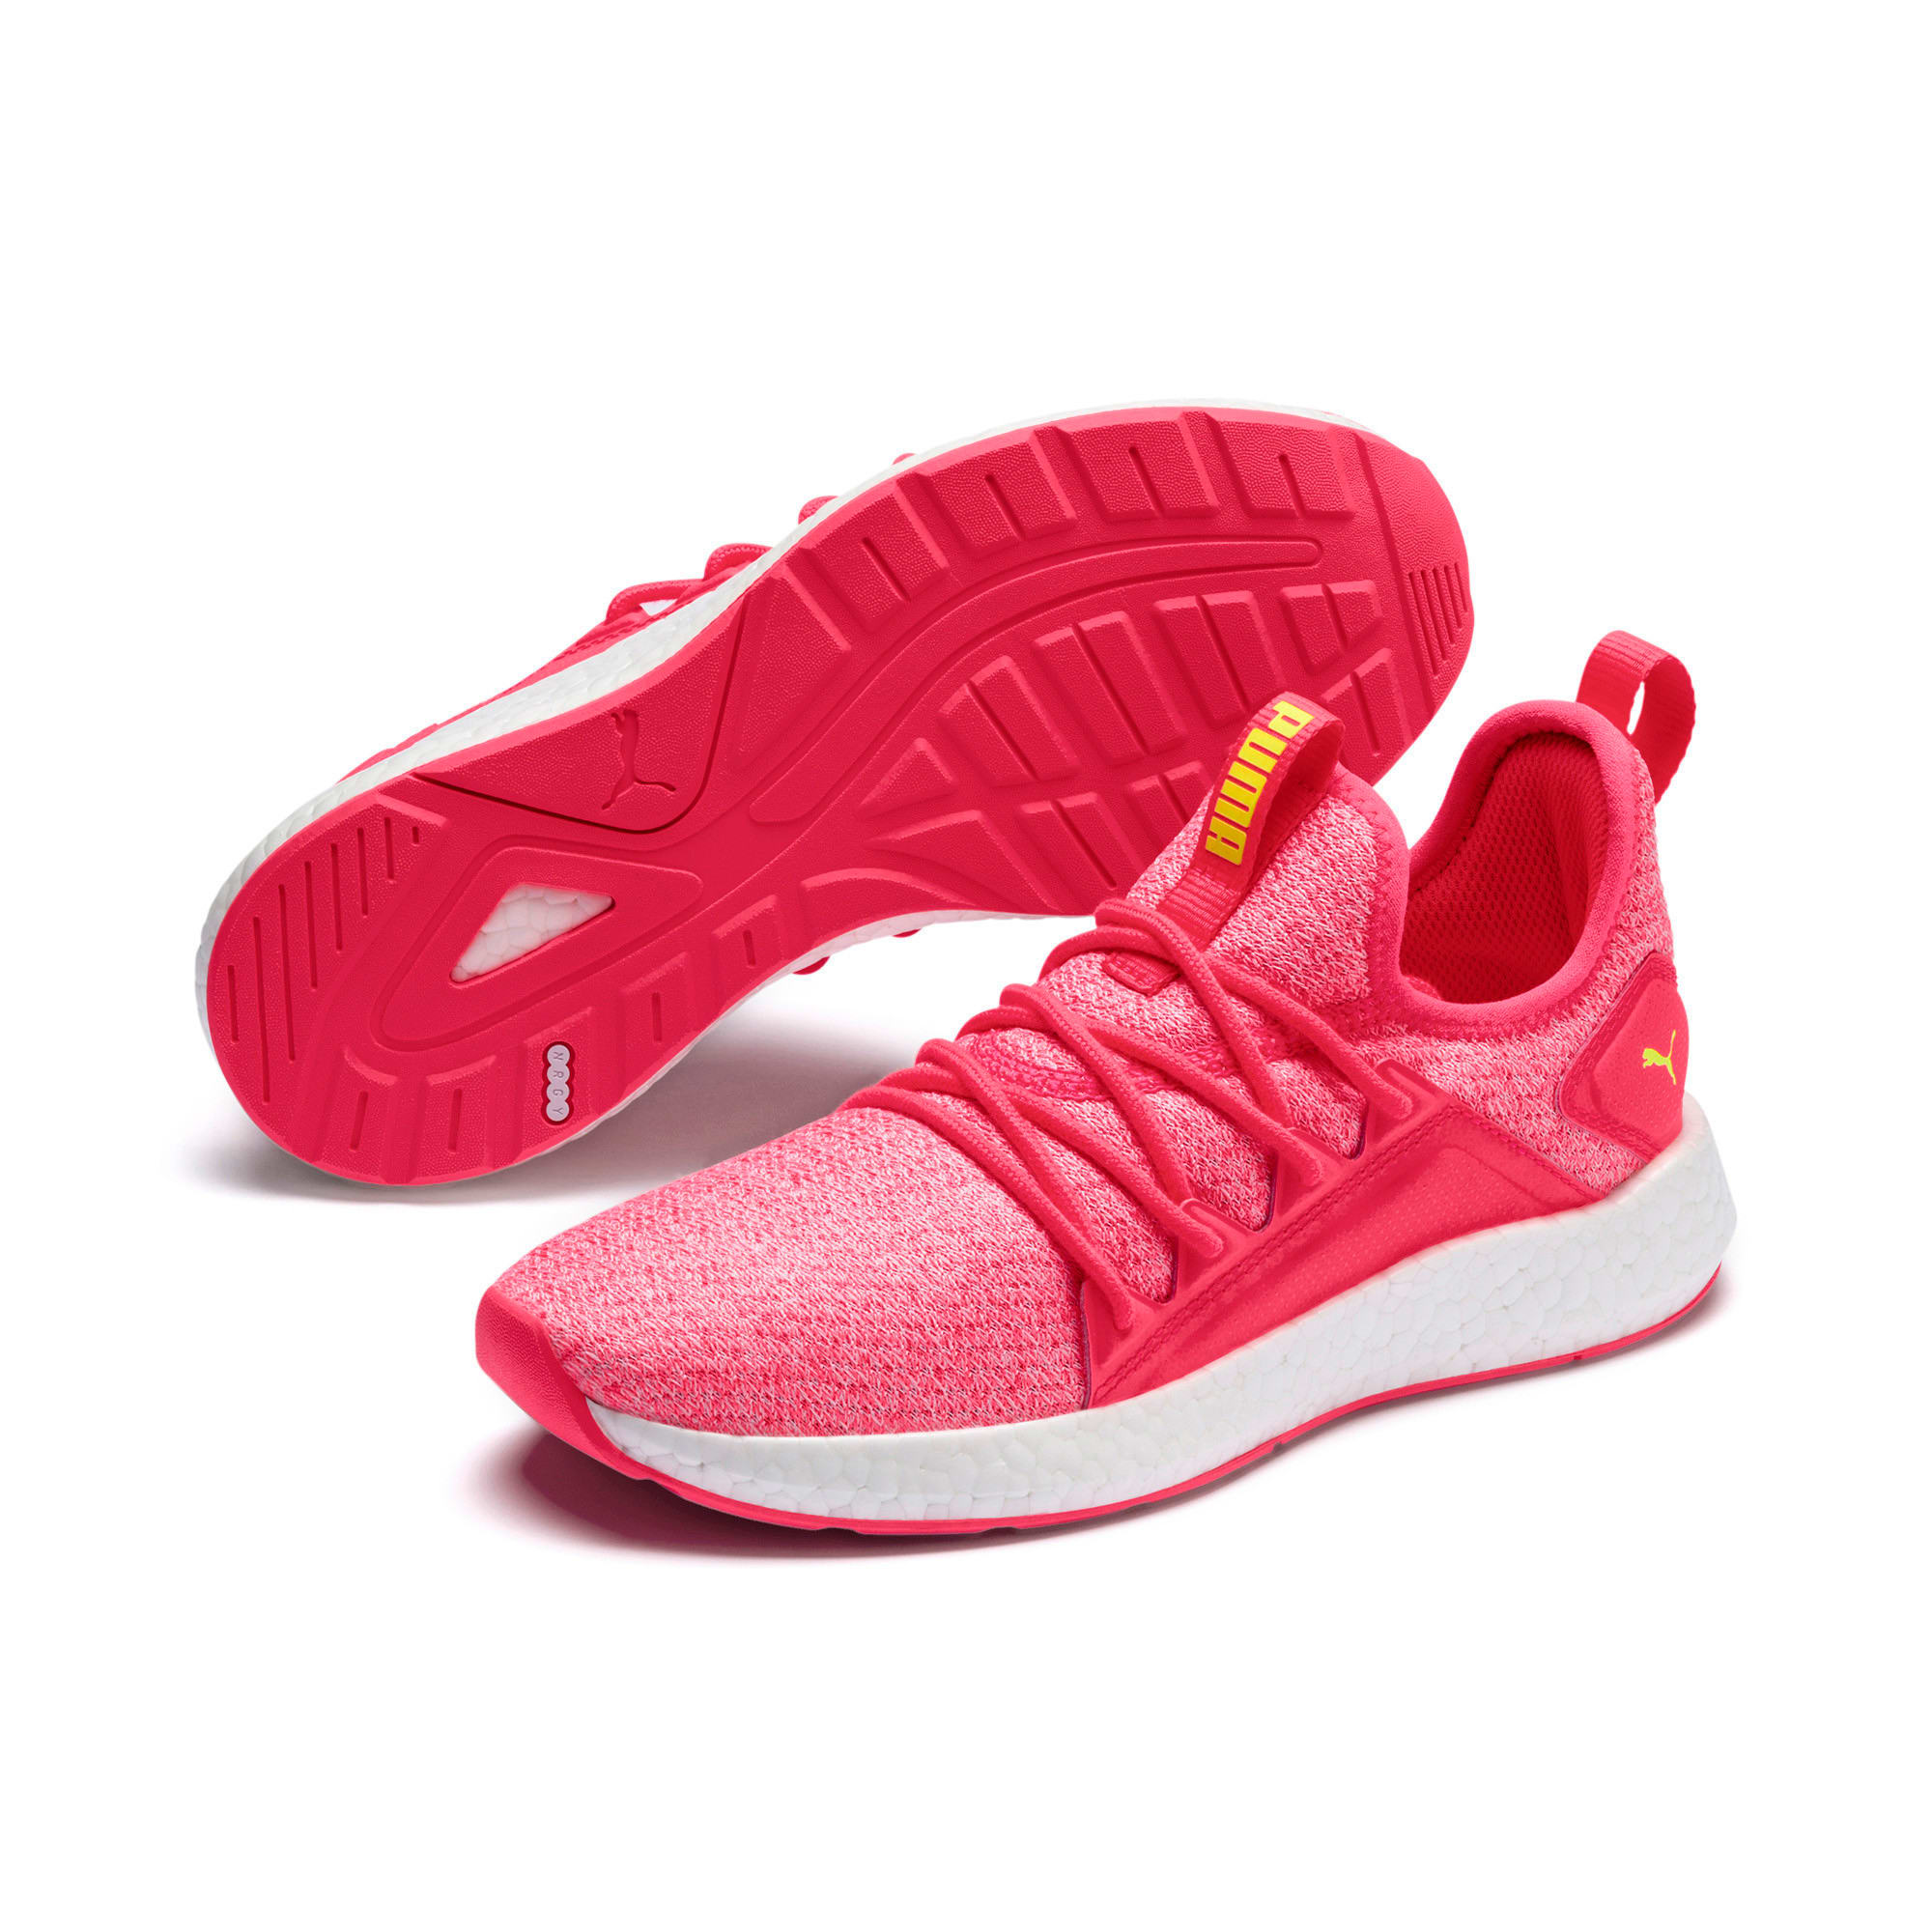 Thumbnail 8 of NRGY Neko Knit Women's Running Shoes, Pink Alert-Puma White, medium-IND